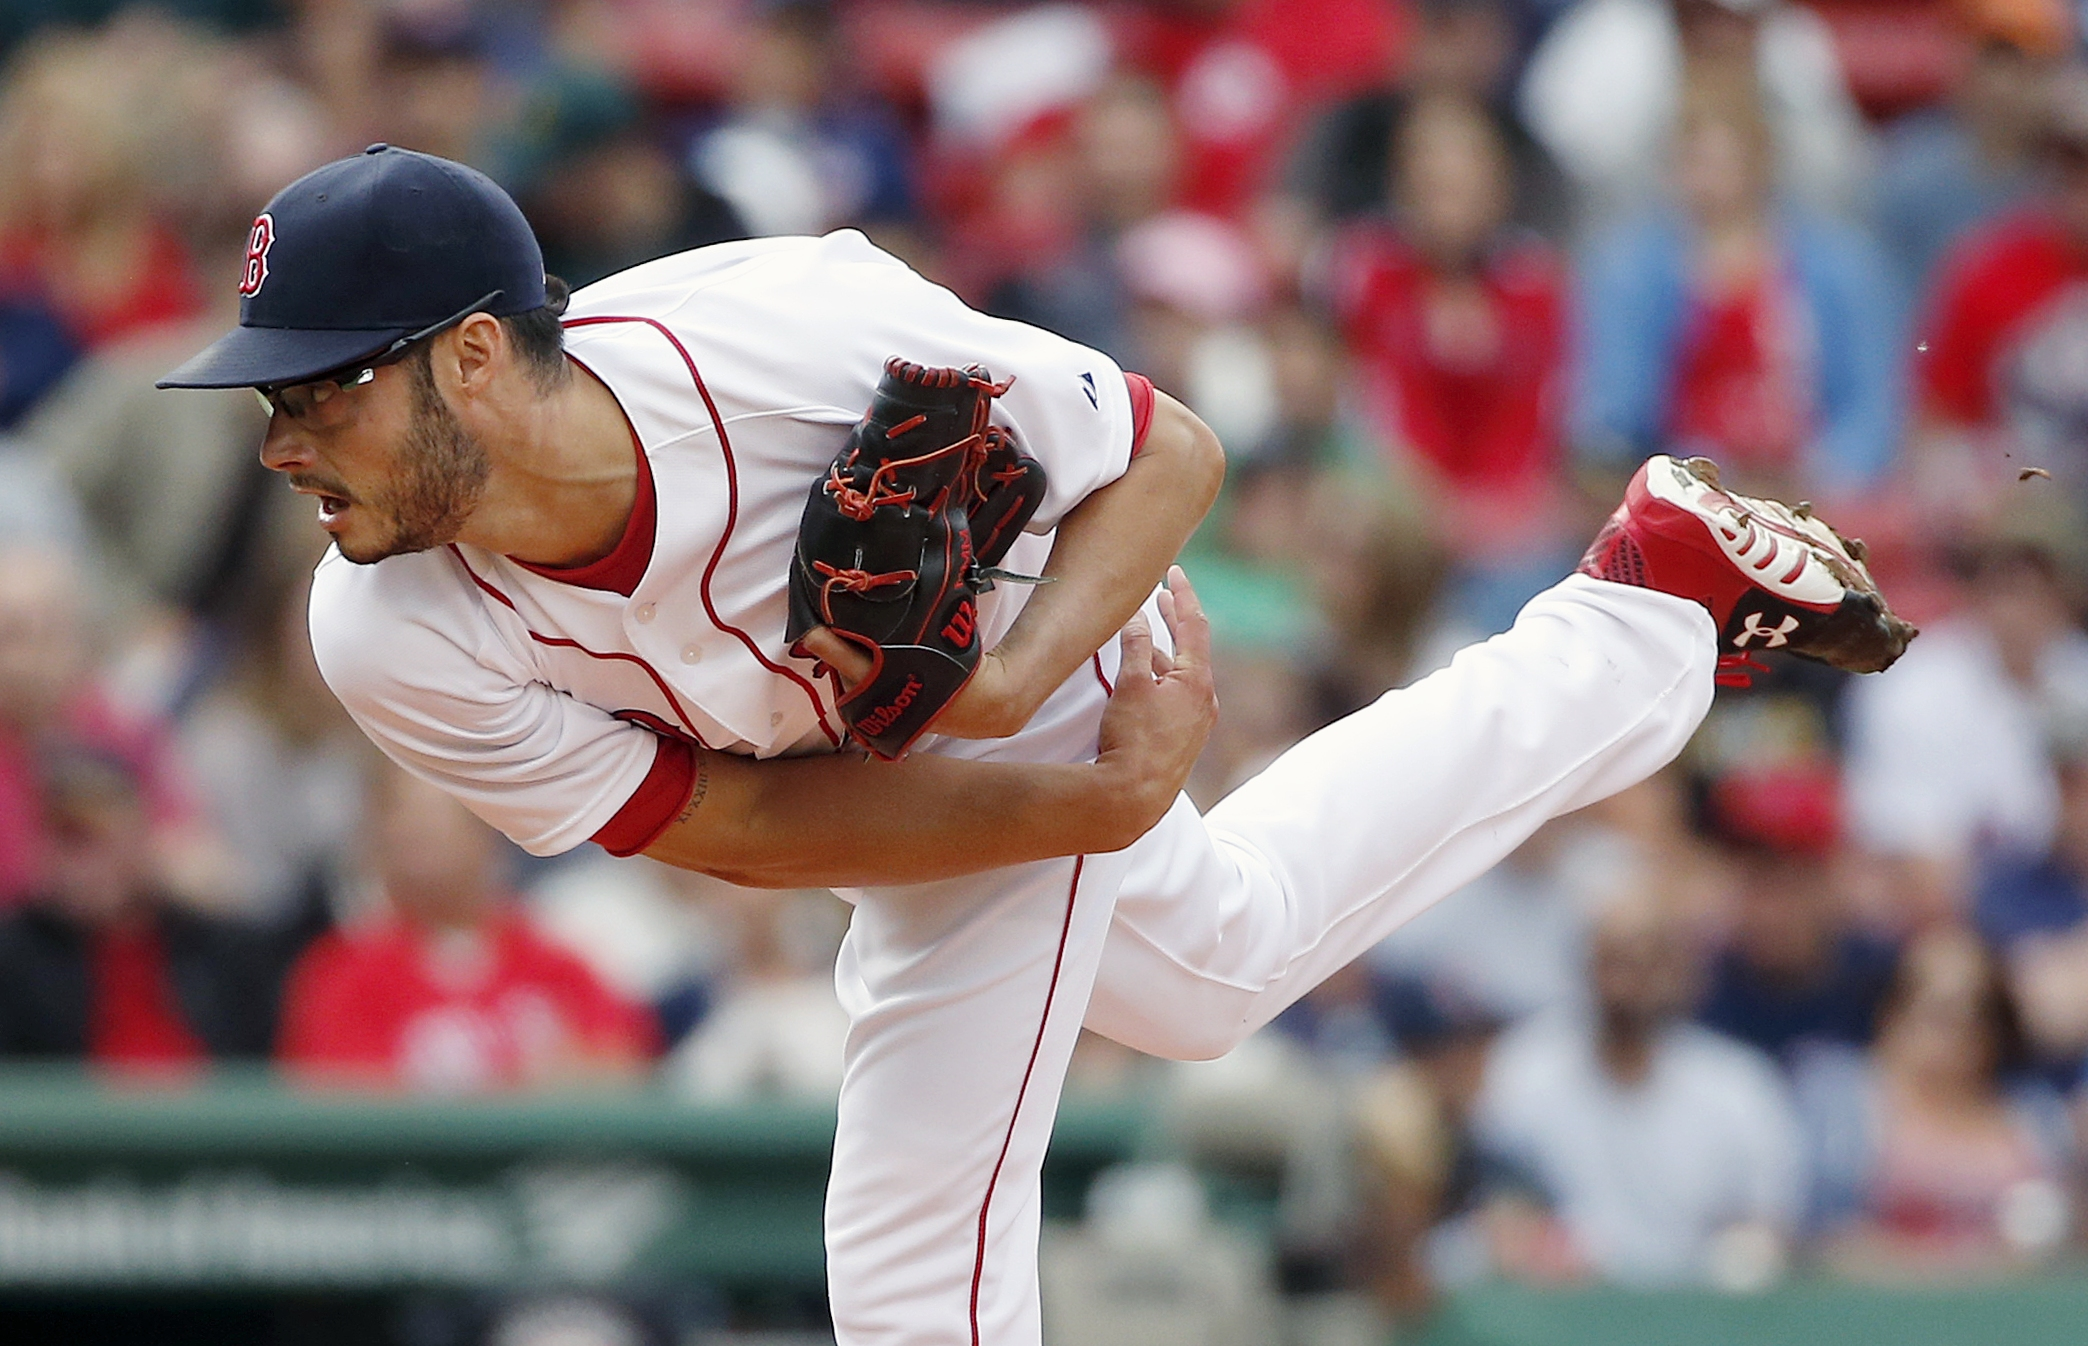 Boston Red Sox's Joe Kelly pitches during the first inning of a baseball game against the Oakland Athletics in Boston, Saturday, June 6, 2015. (AP Photo/Michael Dwyer)